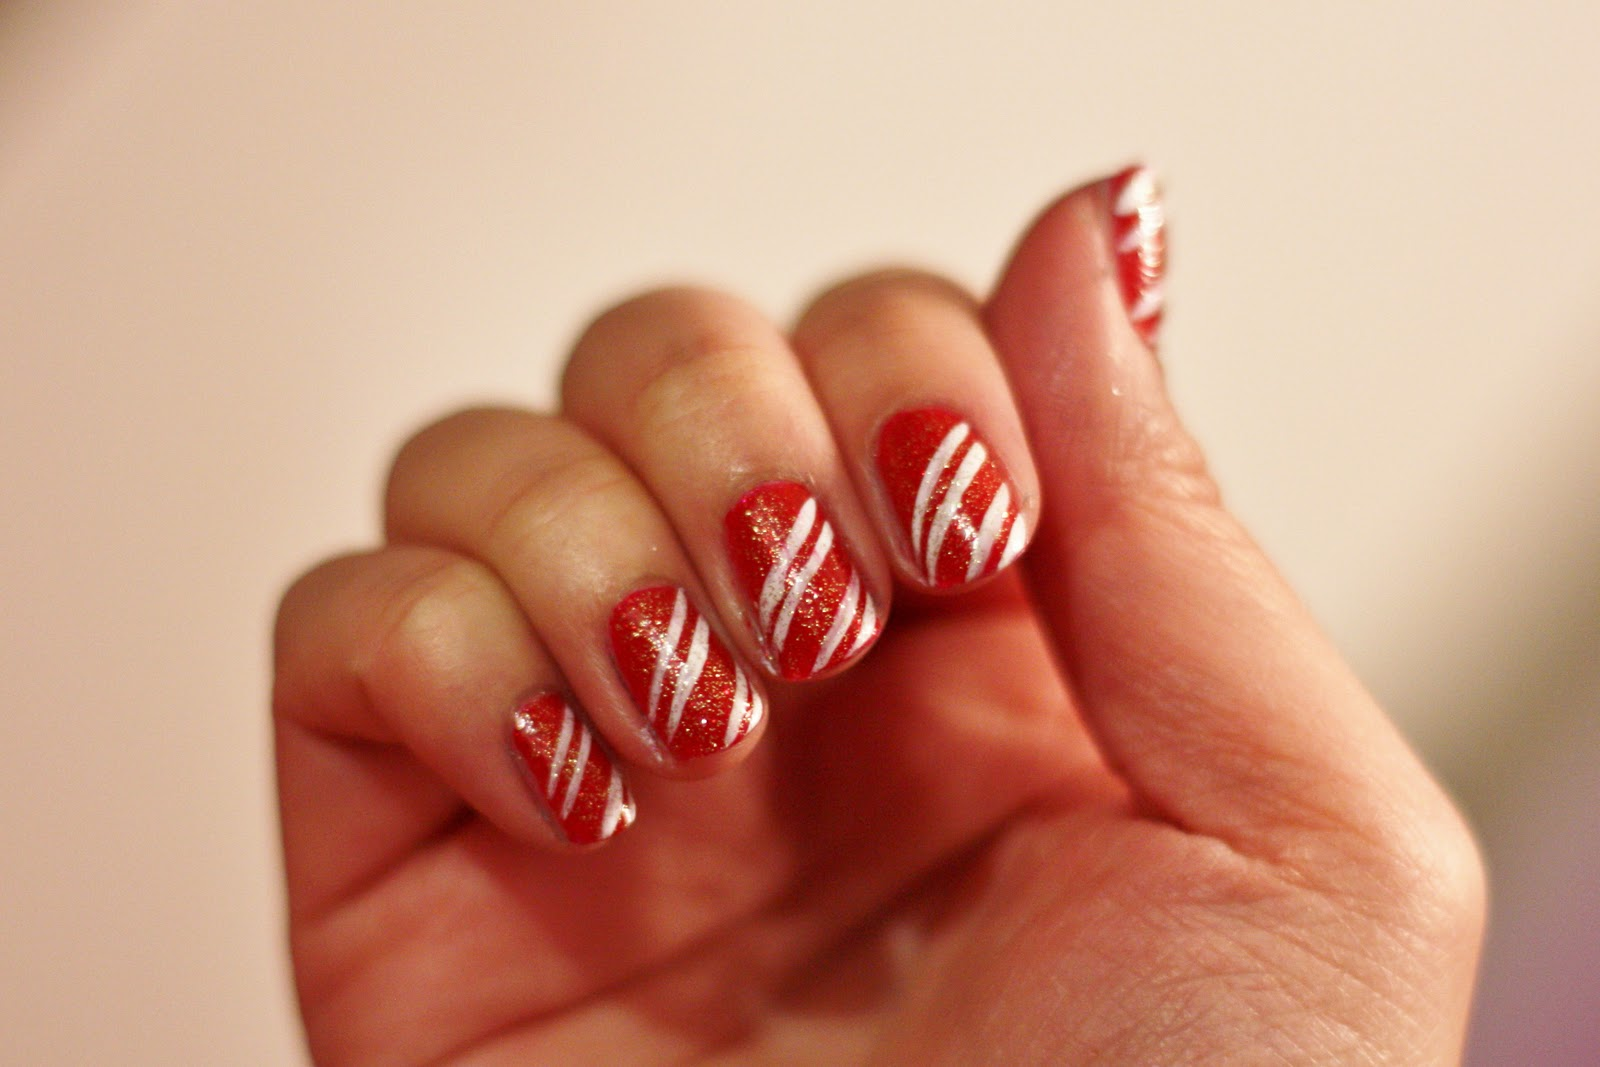 Top 10 Red And Black Nail Designs To Experiment With You May Think That Such A